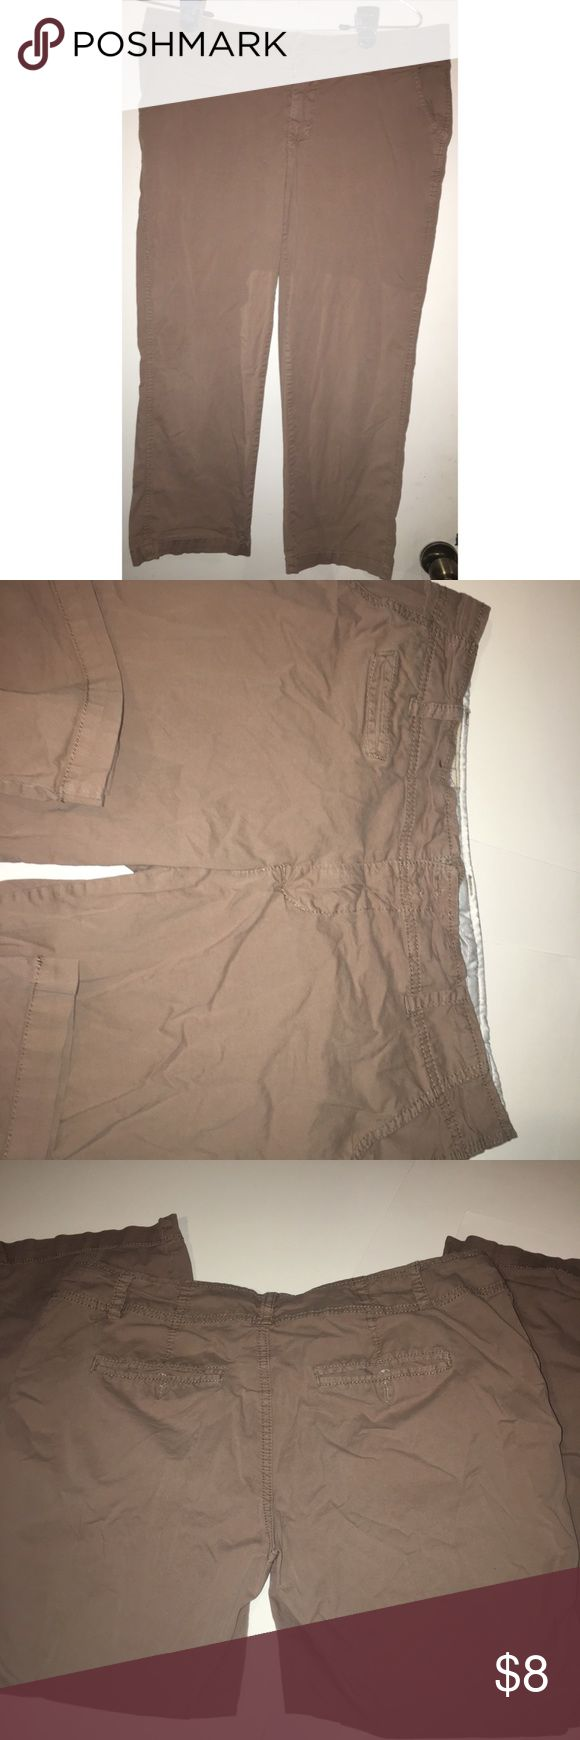 """1st Kiss Khaki Capris (11 Juniors) Cute and comfy capris. They look more like """"flood pants"""" to me though. Inseam is 23 inches. Great condition, no stains or tears. Smoke free 🚭 Pet friendly home 🐱🐱🐶 1st Kiss Pants Capris"""